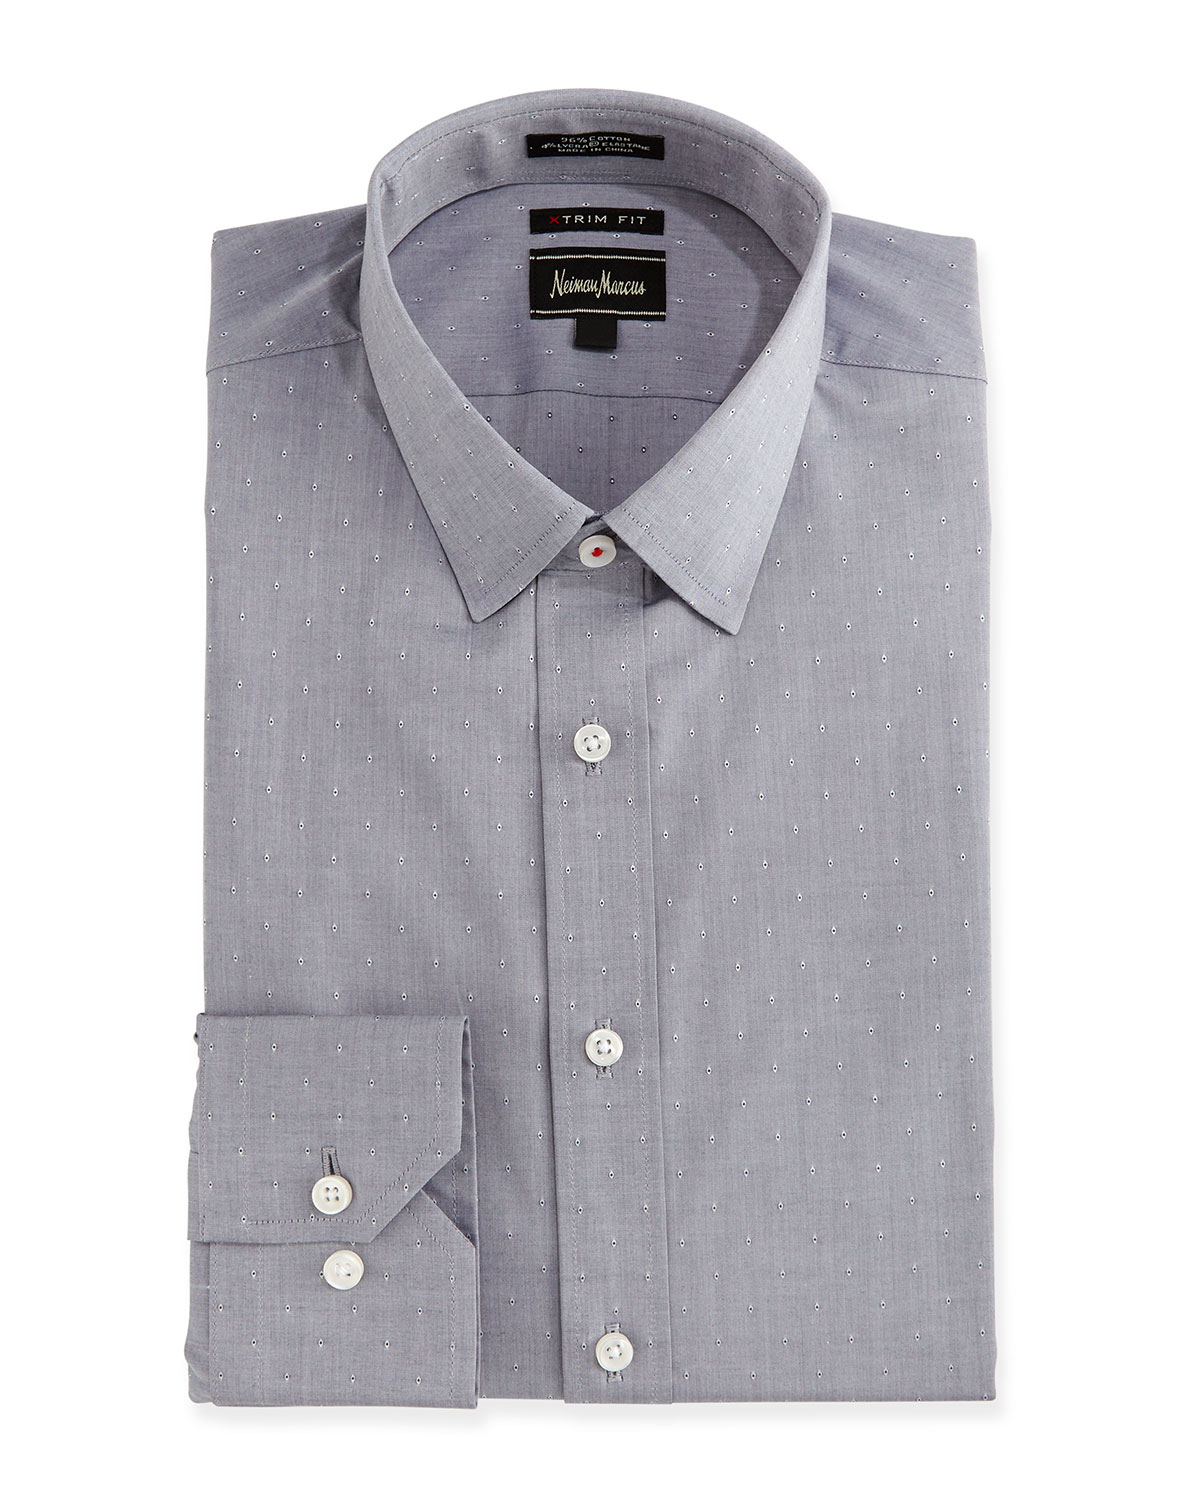 Neiman marcus extra trim fit regular finish dotted dress for Extra trim fit dress shirt